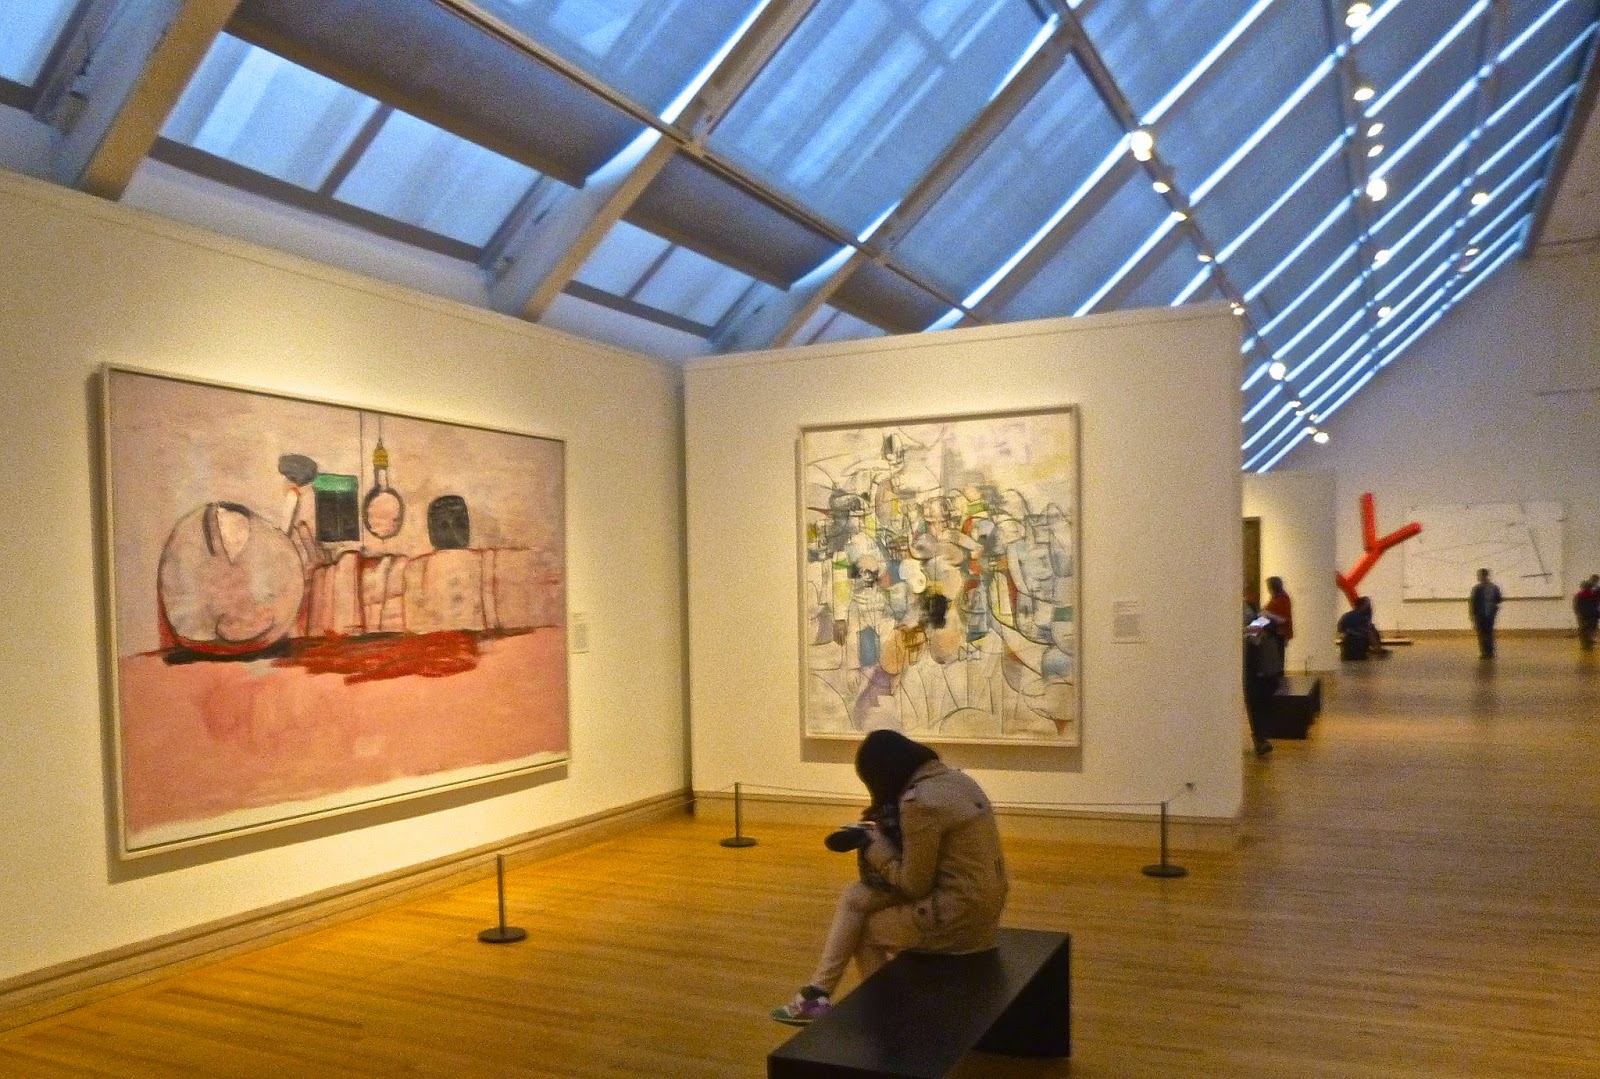 A short Essay on A Visit to the Museum